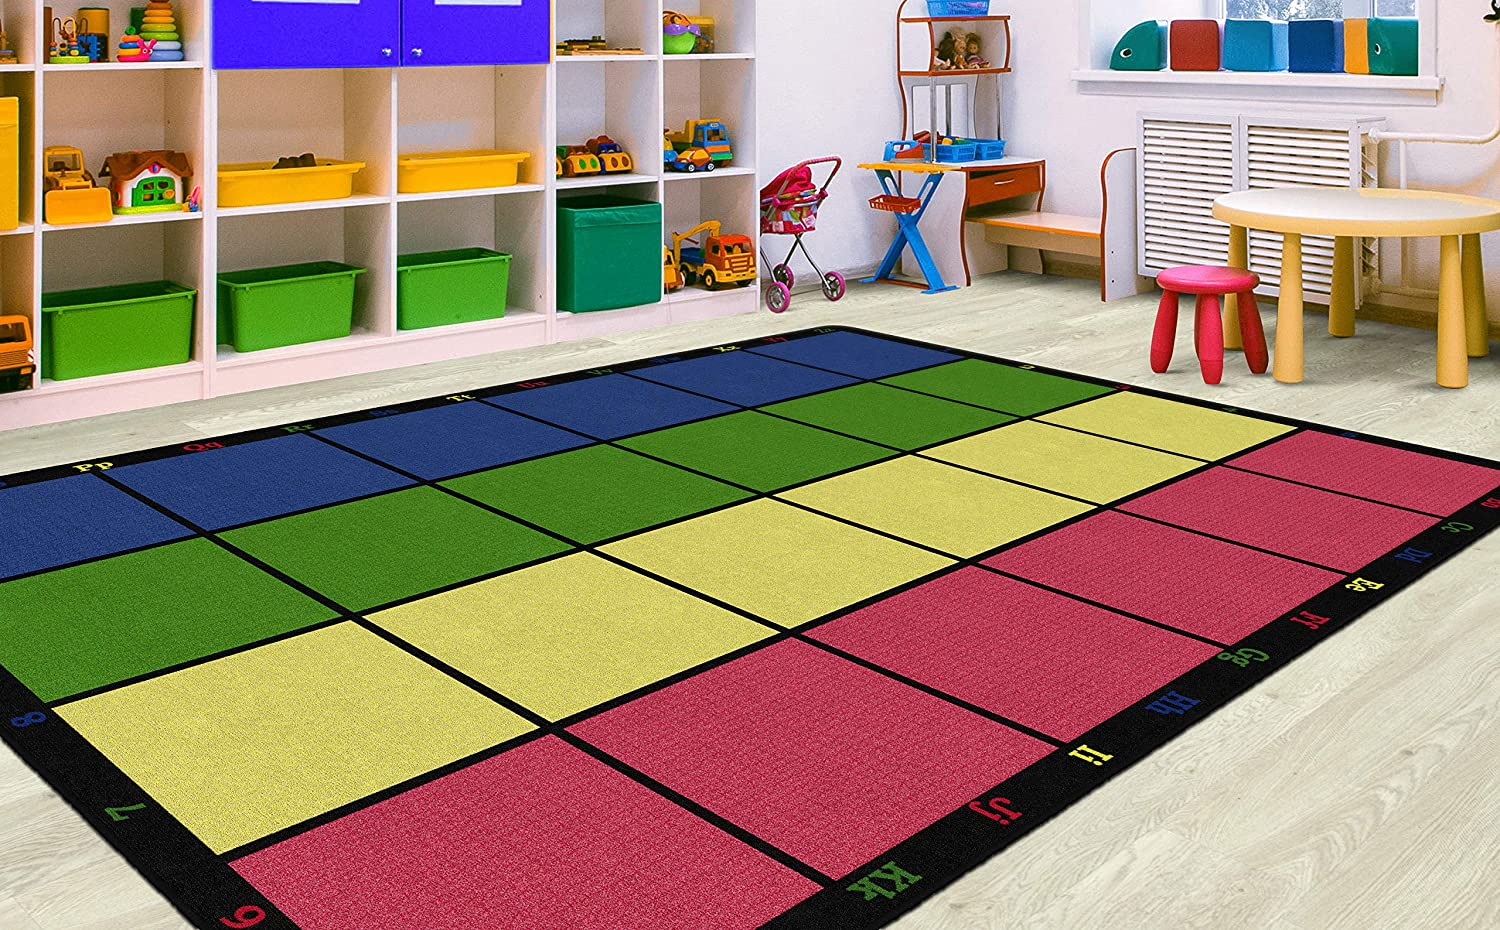 2. Learning Grid Numbers And Letters Seating Area Rug